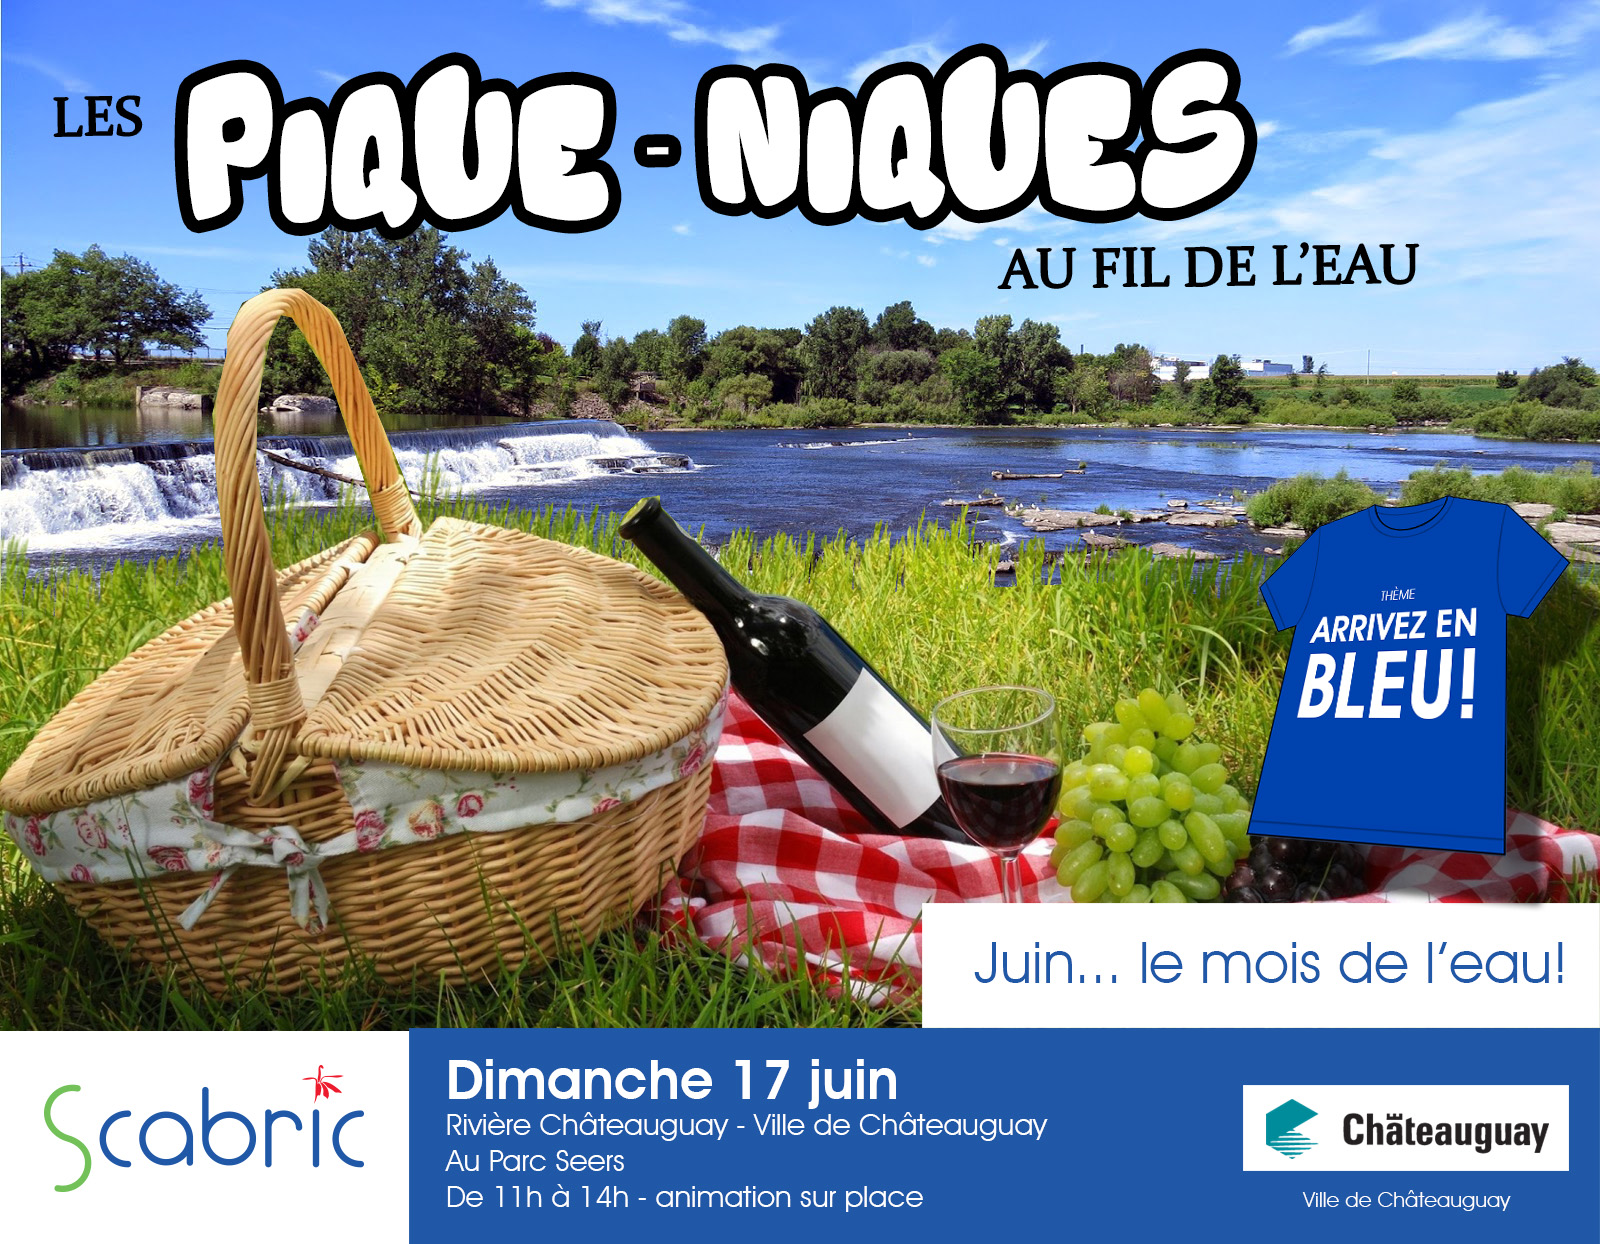 montage picnic Chateauguay